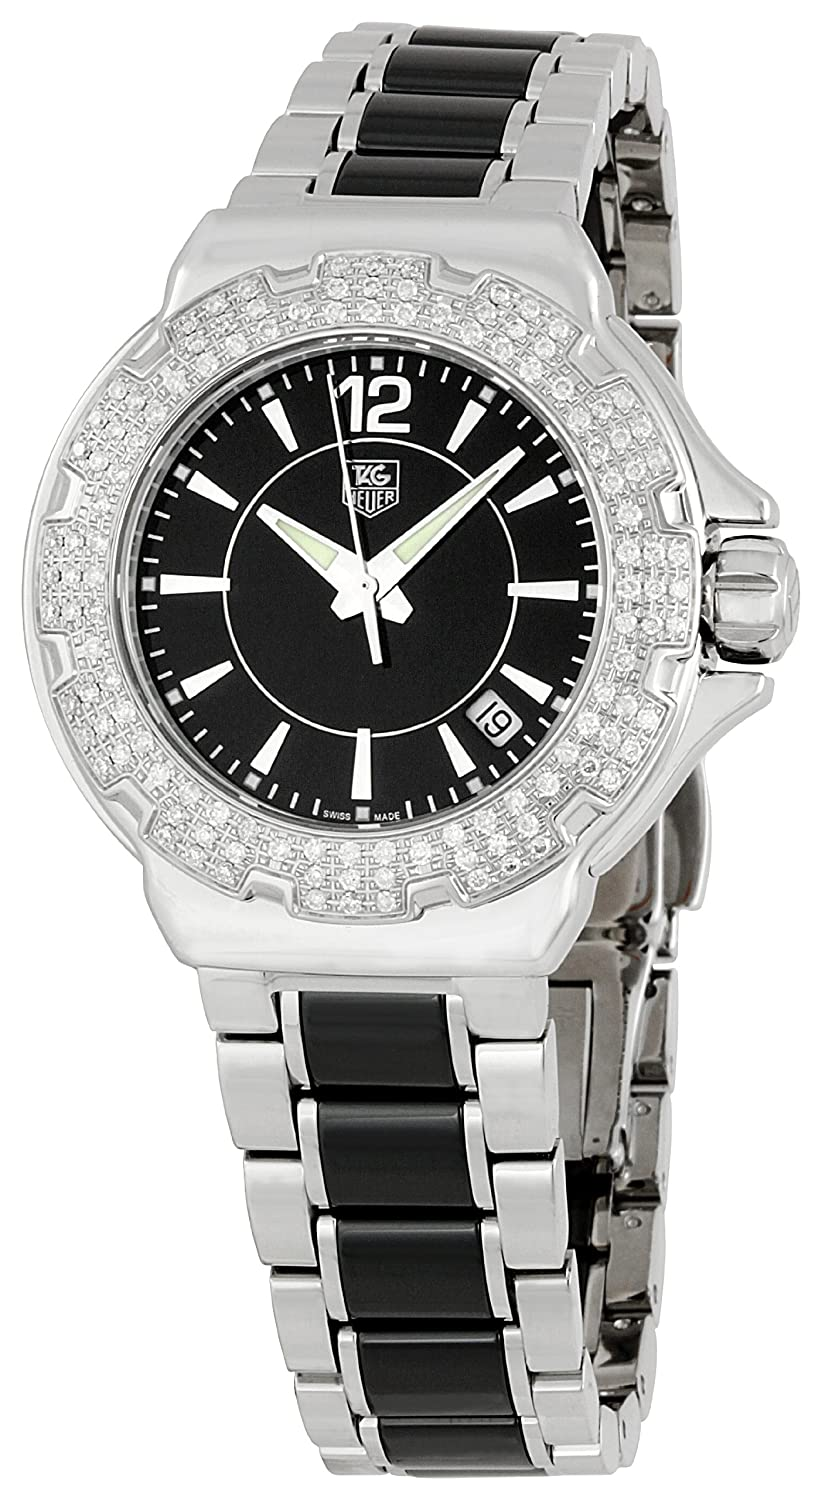 Tag Heuer Women 's wah1214ba0859 Formula 1 Ceramic Watch B004HGCQKK